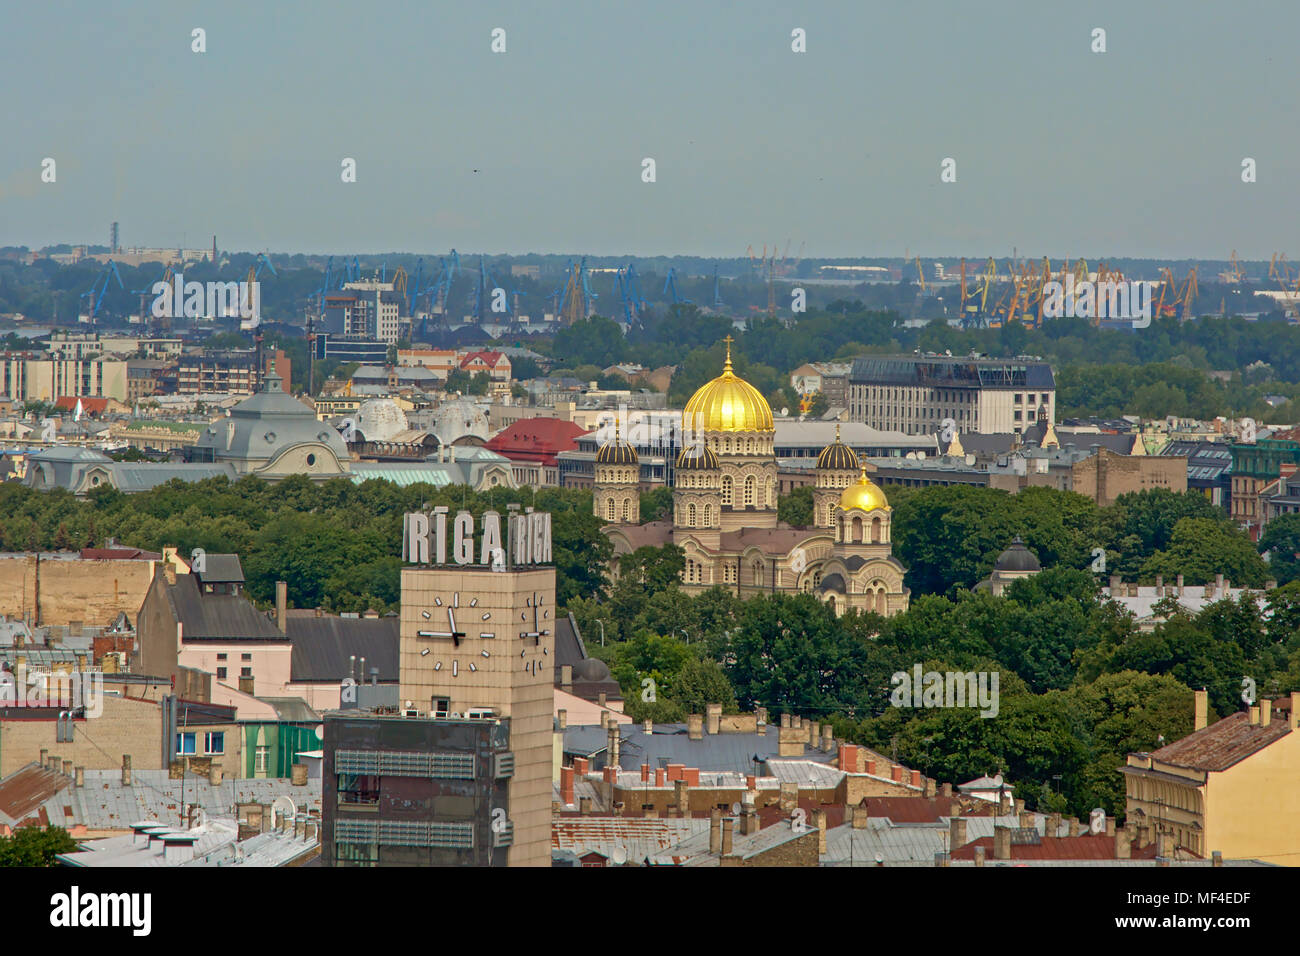 Aerial view on Riga, showing the golden cupola` of the Orthodox cathedral and railway station clock tower - Stock Image